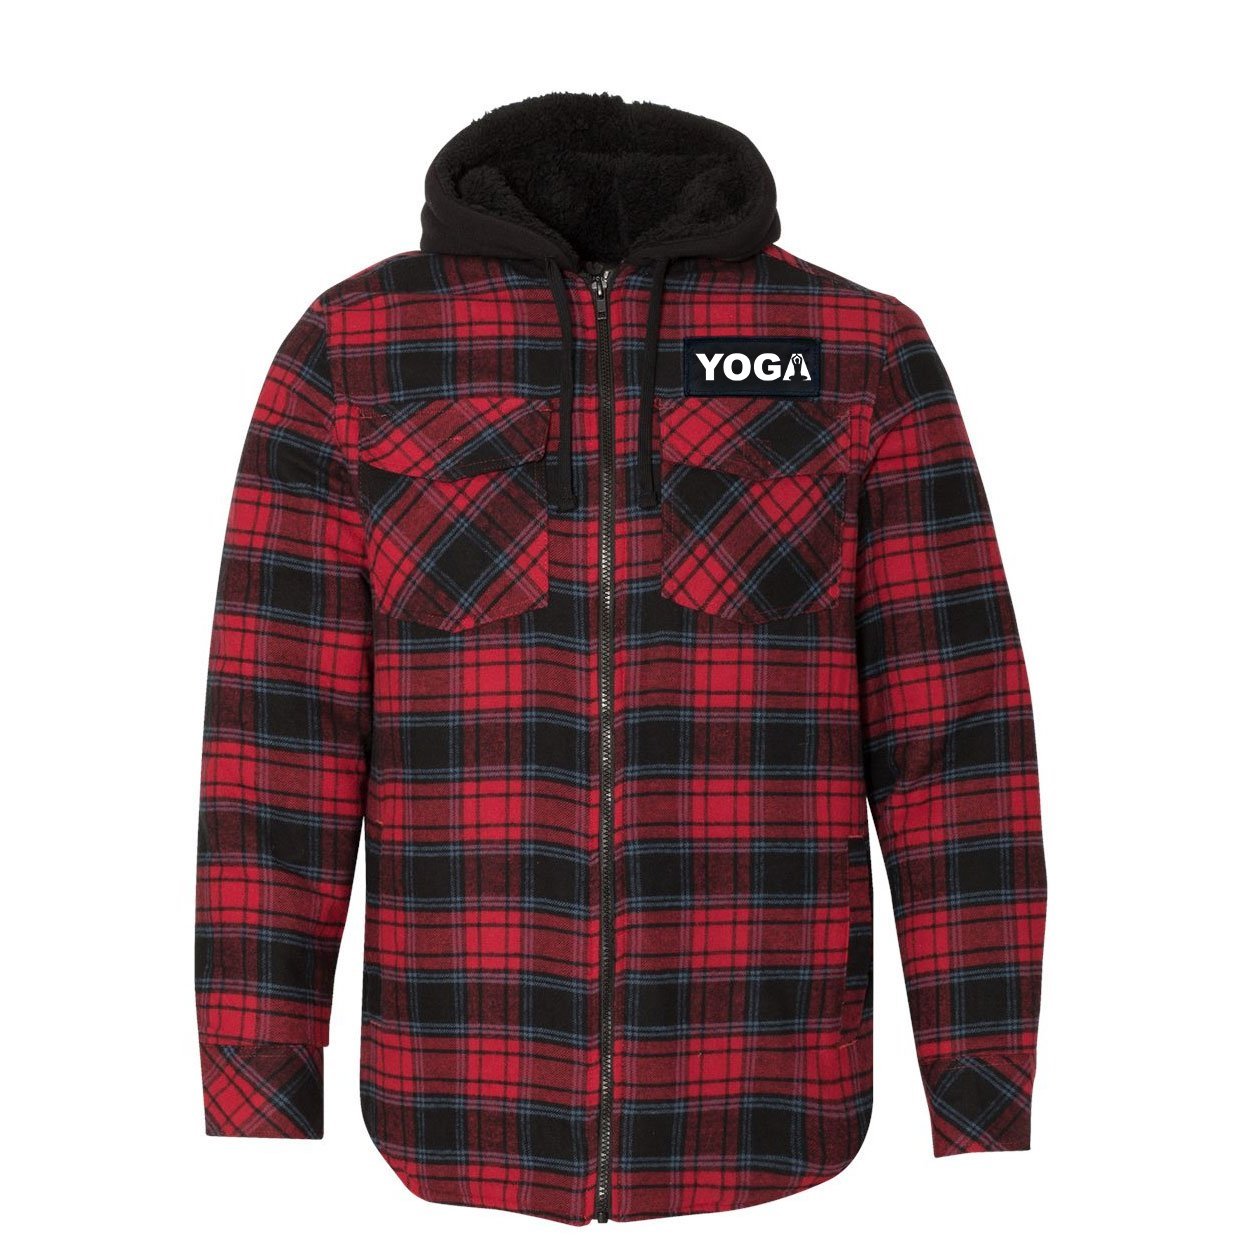 Yoga Meditation Logo Classic Unisex Full Zip Woven Patch Hooded Flannel Jacket Red/Black Buffalo (White Logo)